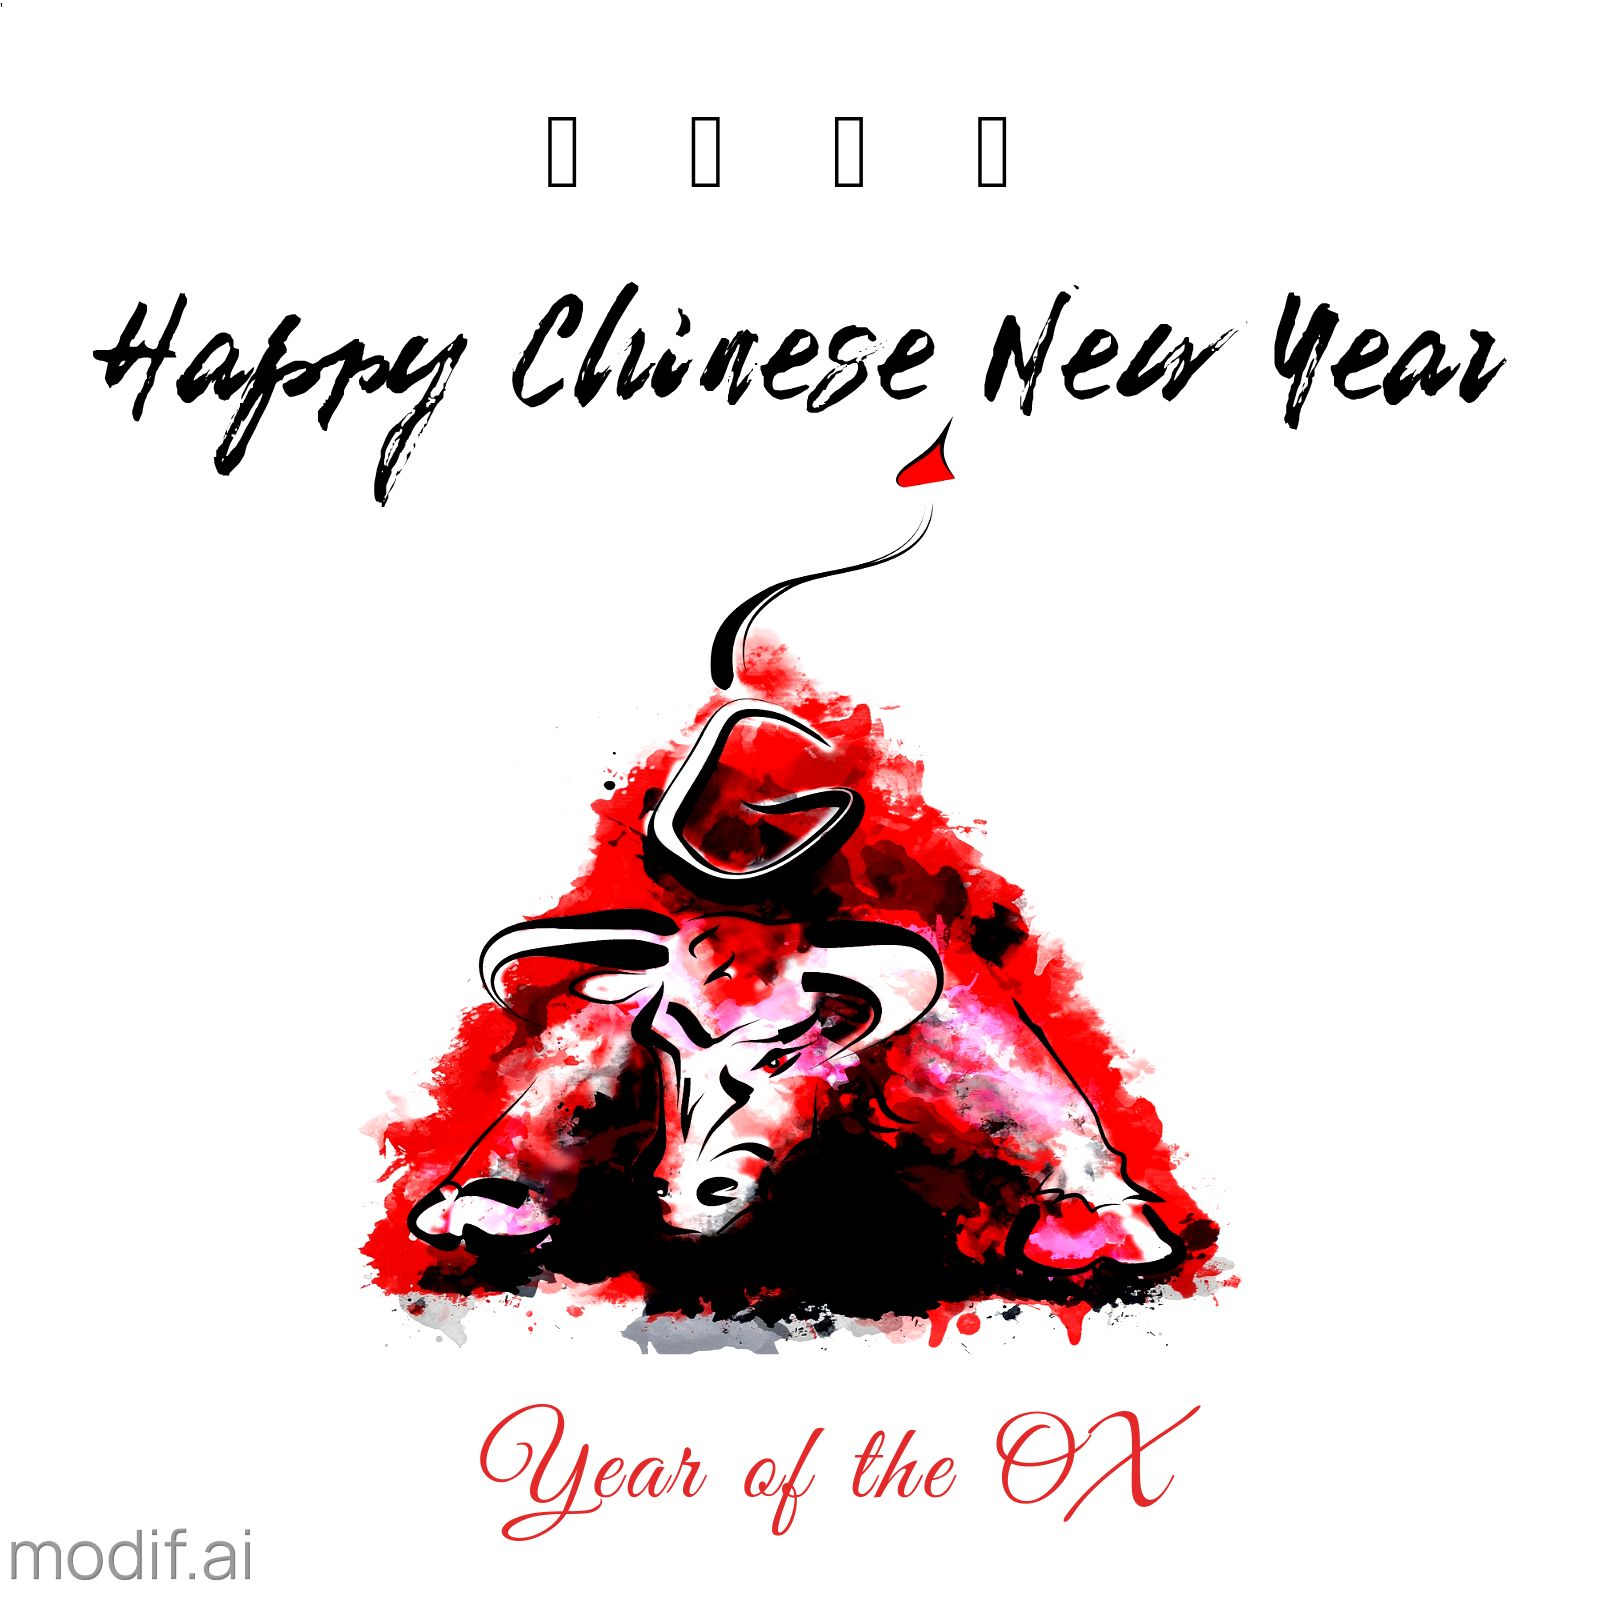 Chinese New Year Instagram Post